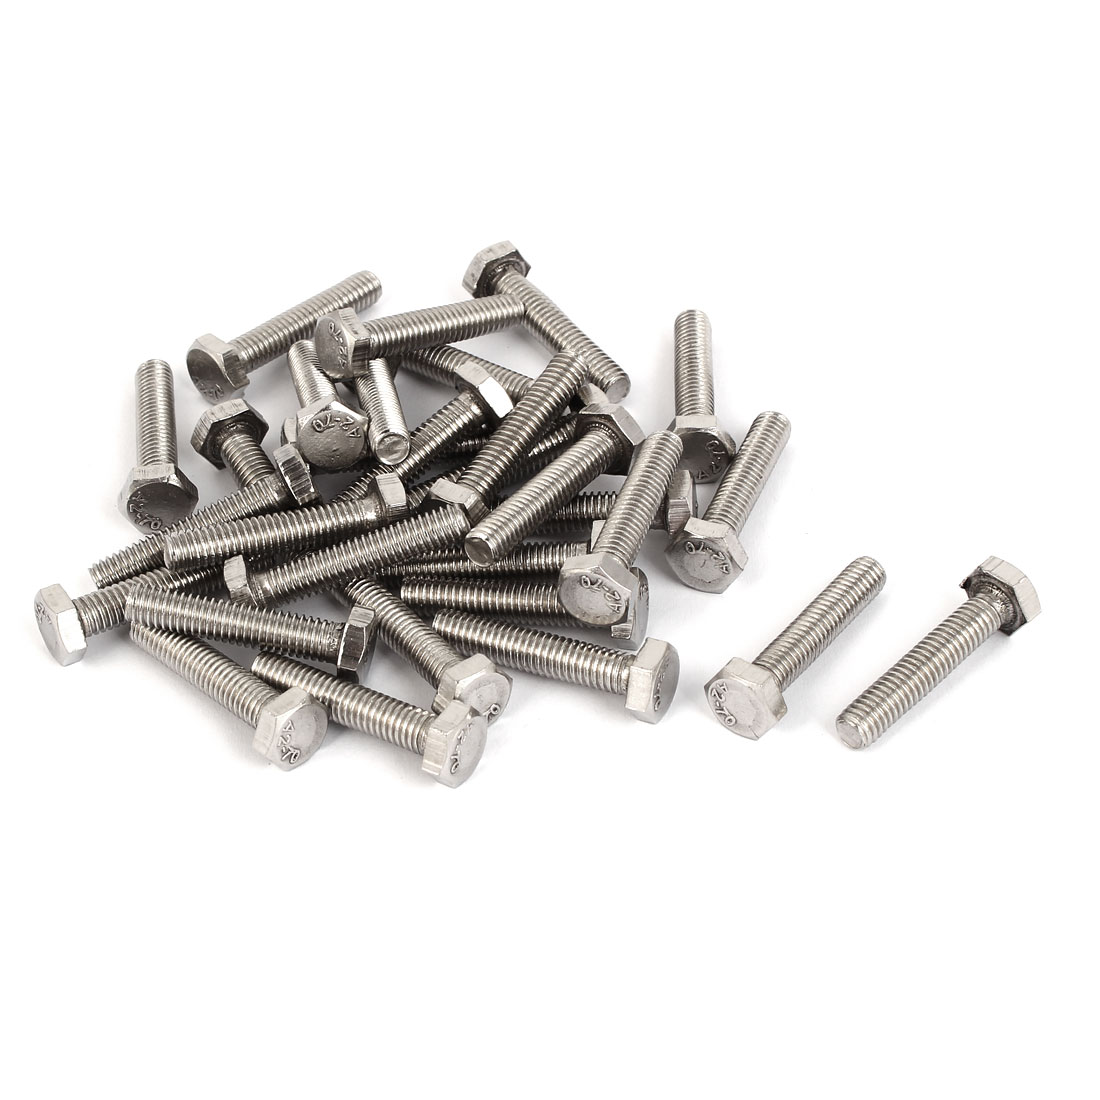 M6 x 30mm Stainless Steel Fully Thread Hex Head Hexagon Screws DIN 933 30PCS